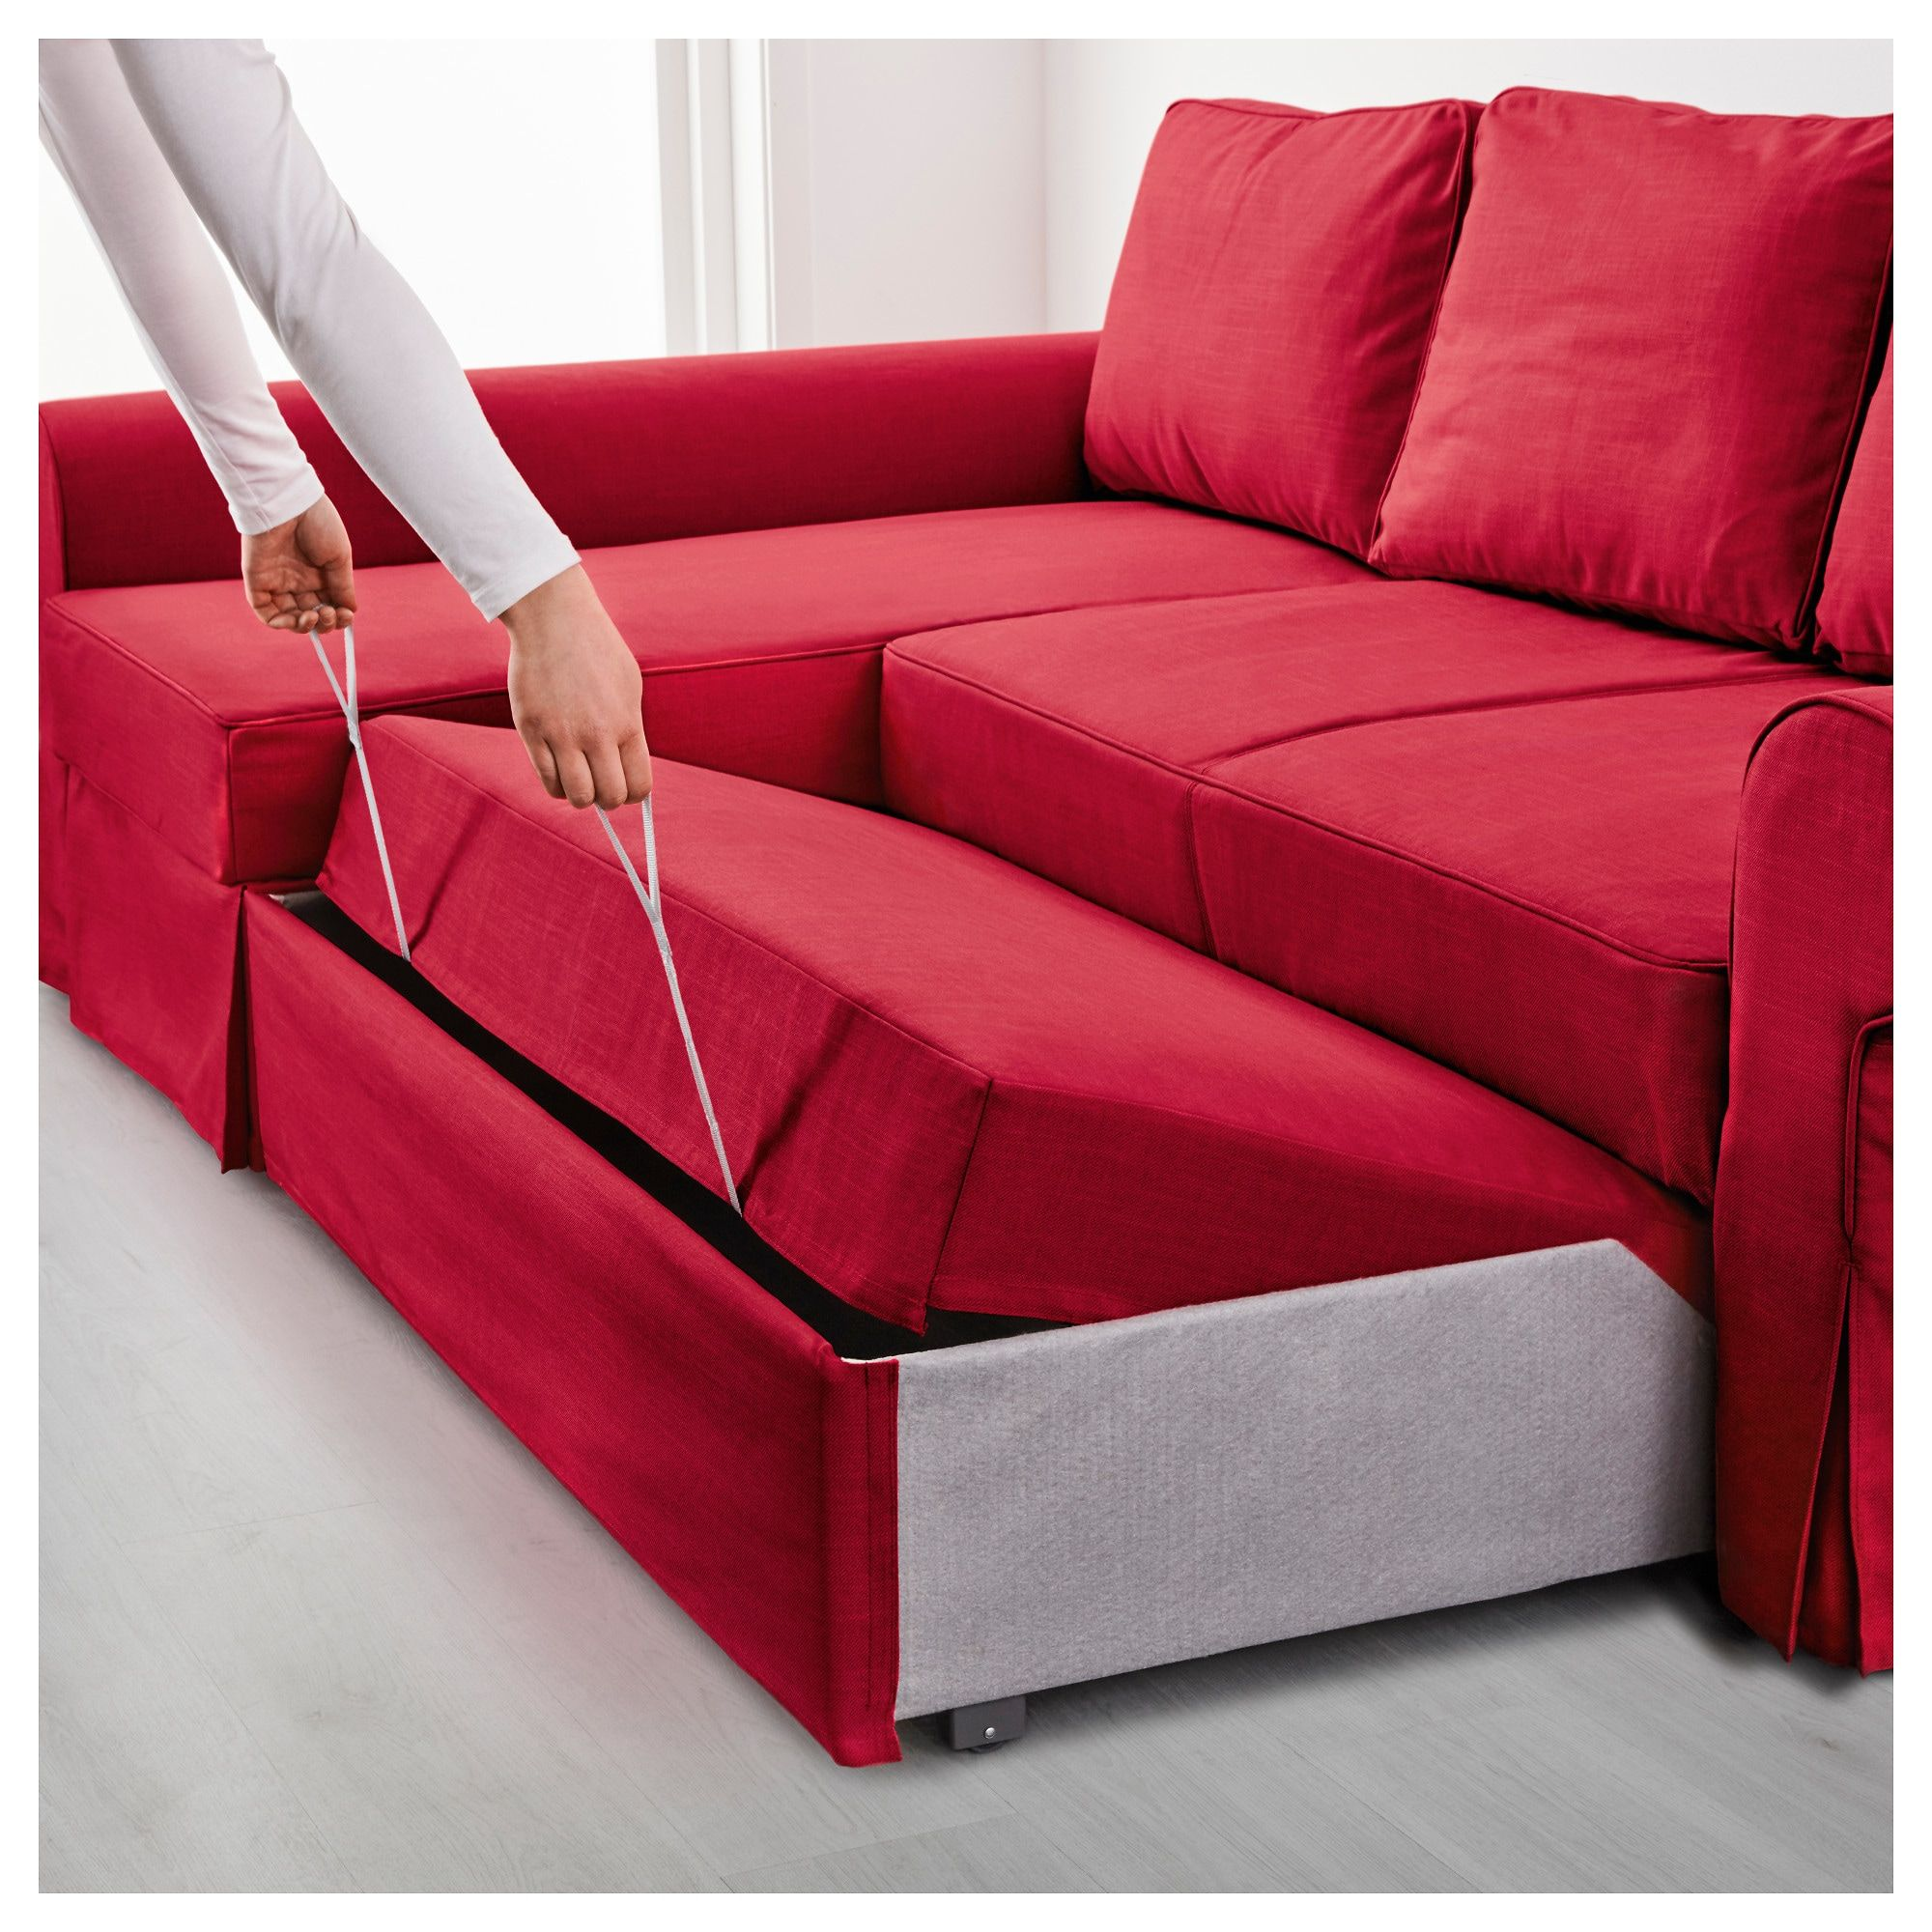 Ledersofa Ikea Rot Backabro Bettsofa Recamiere Nordvalla Rot In 2019 Products